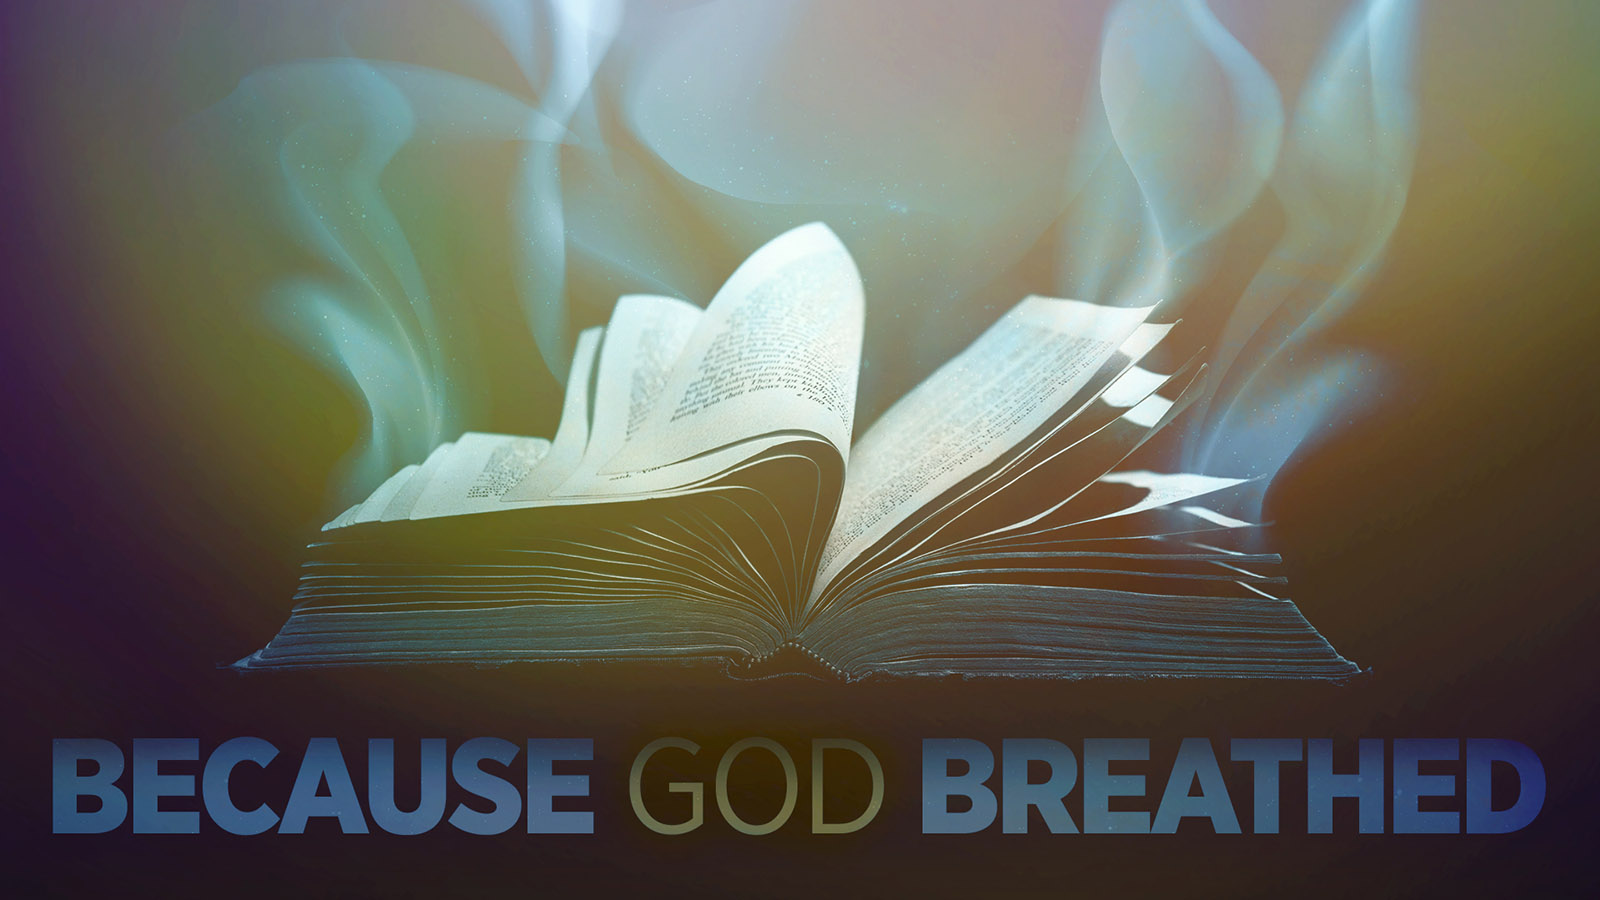 Because God Breathed